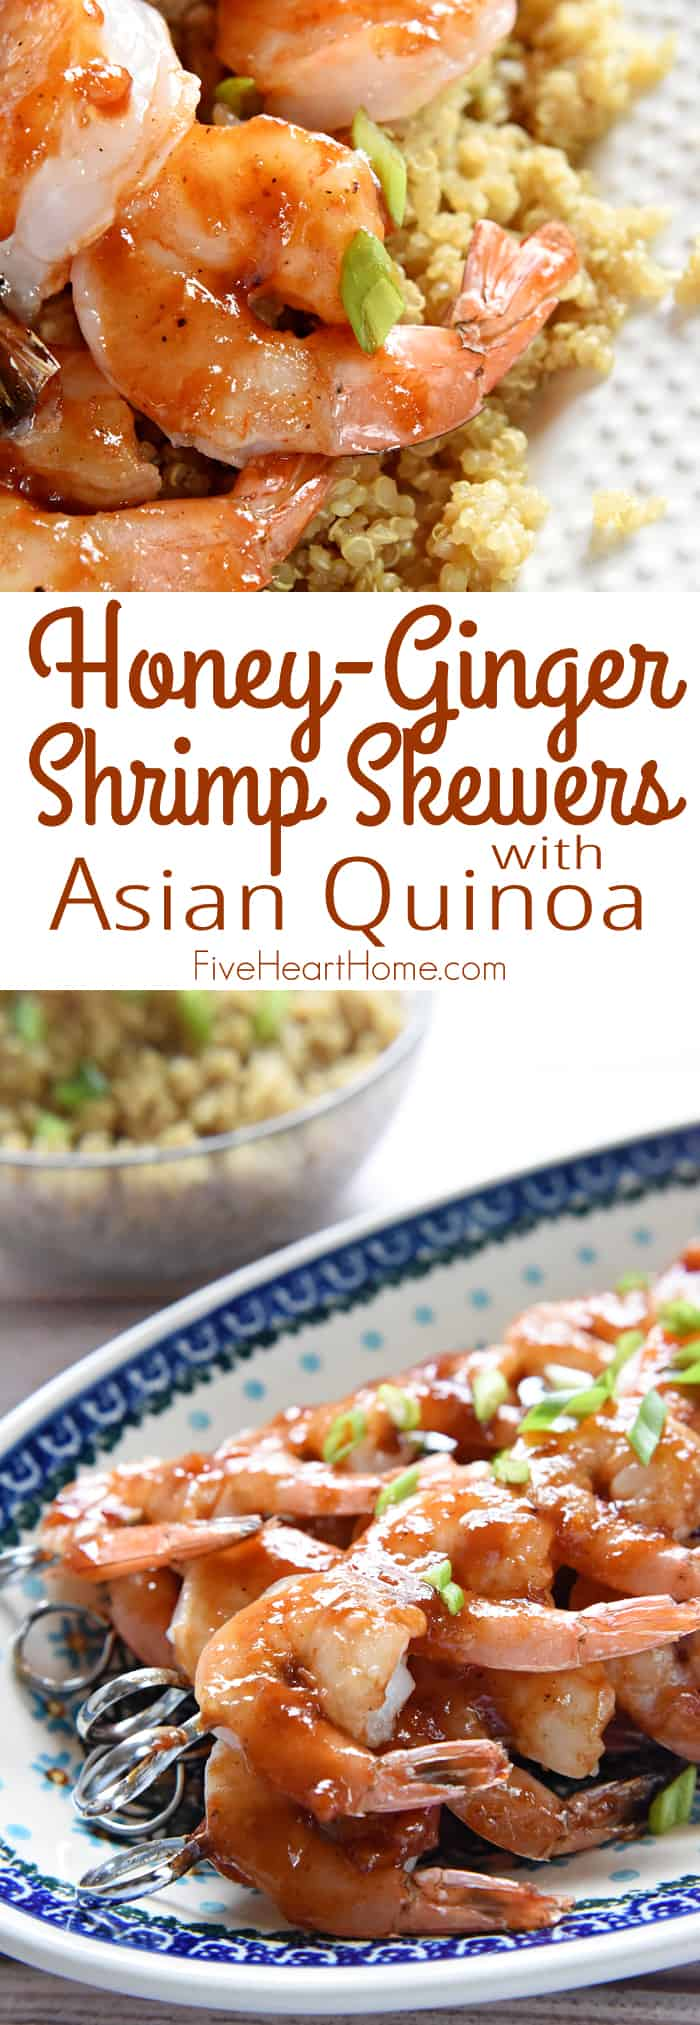 Honey Garlic Shrimp ~ plump shrimp are glazed with a sweet, tangy, homemade BBQ sauce for an effortless, delicious weeknight dinner that's special enough for company! | FiveHeartHome.com via @fivehearthome